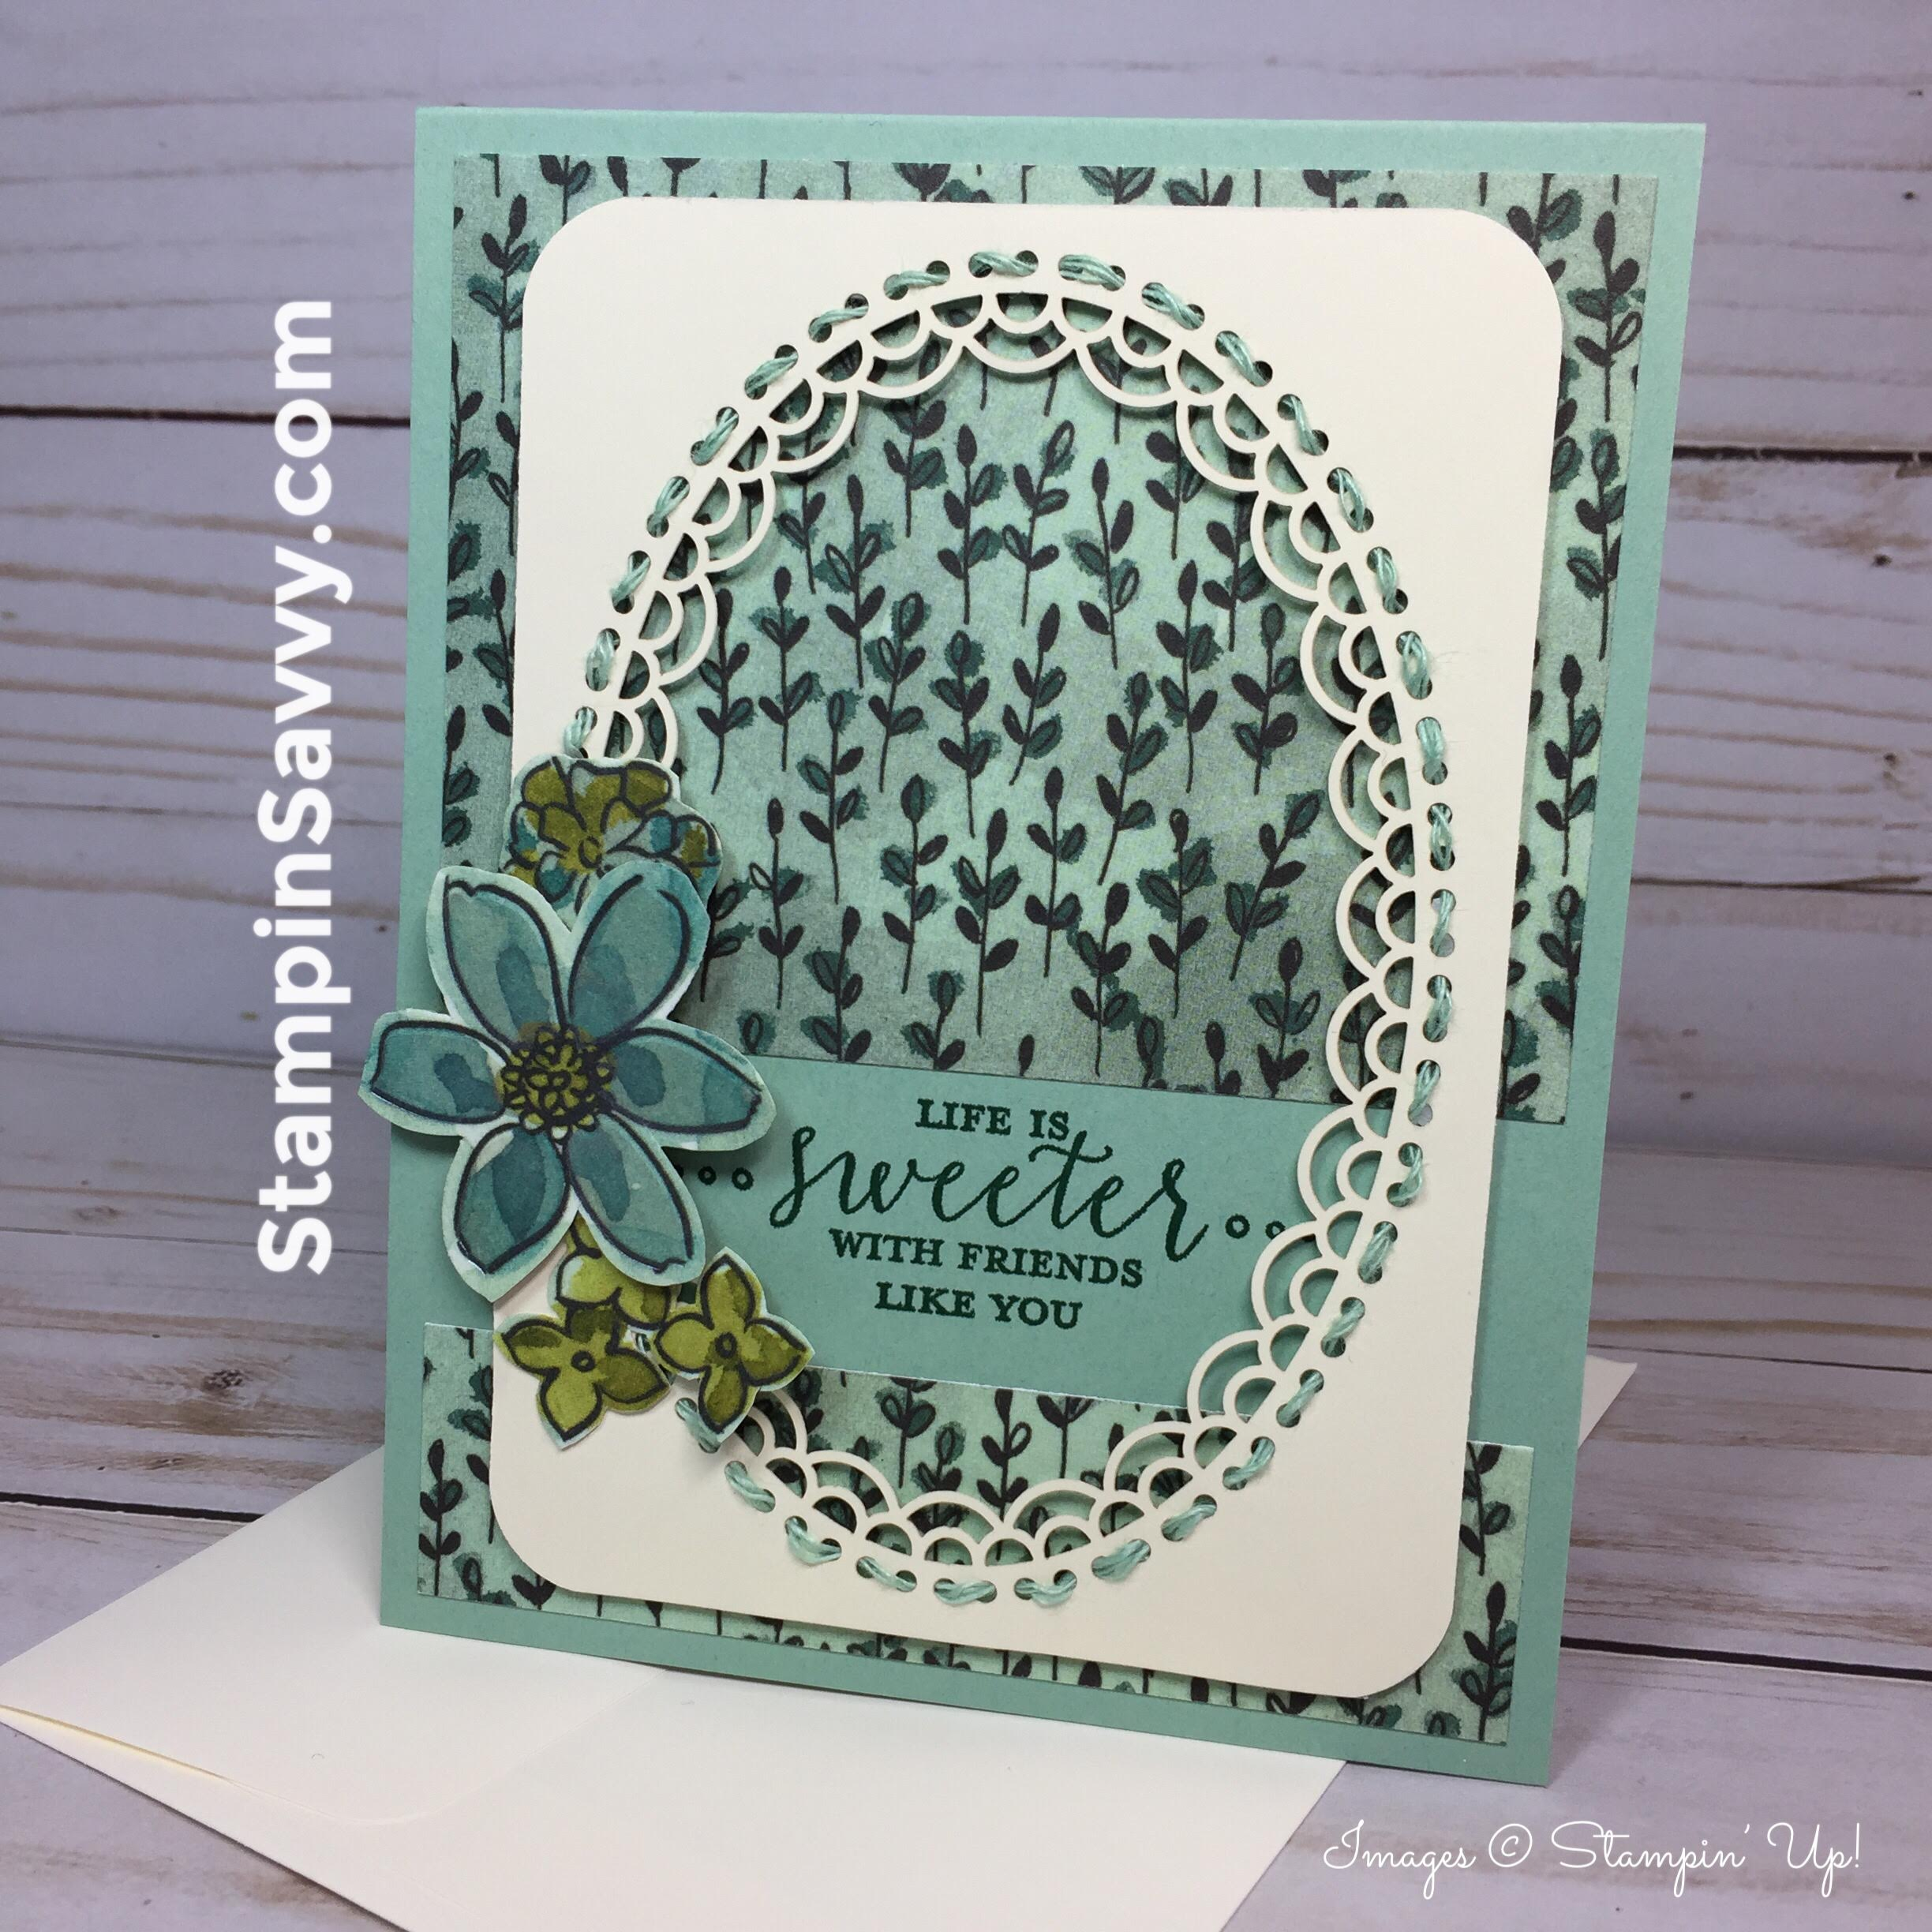 life is sweeter card, stampinup, stampin up, stampin savvy, stampinsavvy, tammy beard